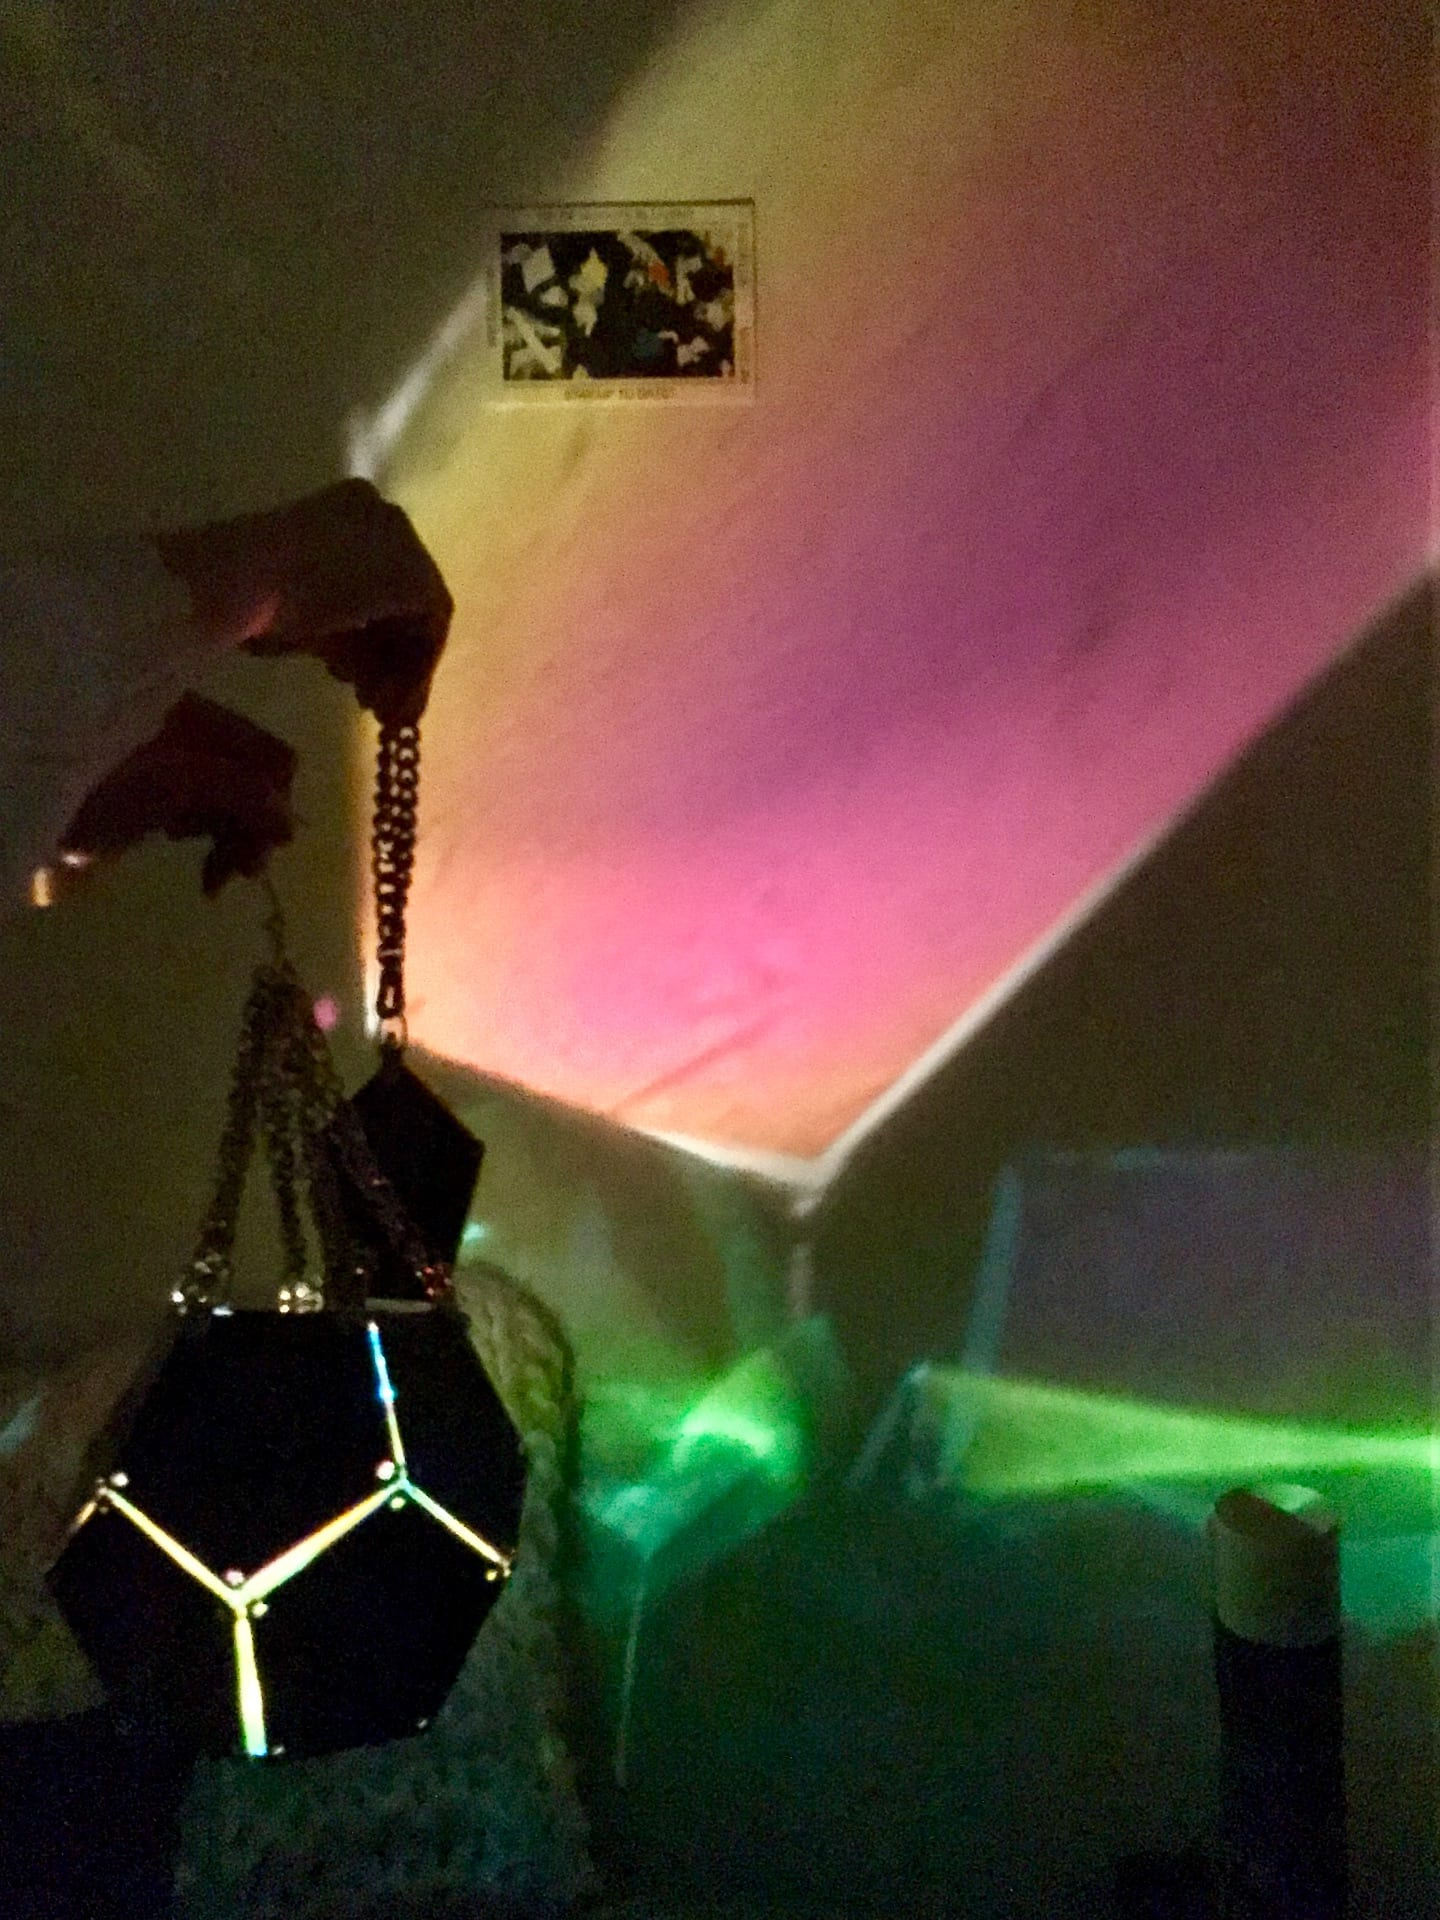 Space/Materiality Light and Shadow: Dangling Dodecahedron